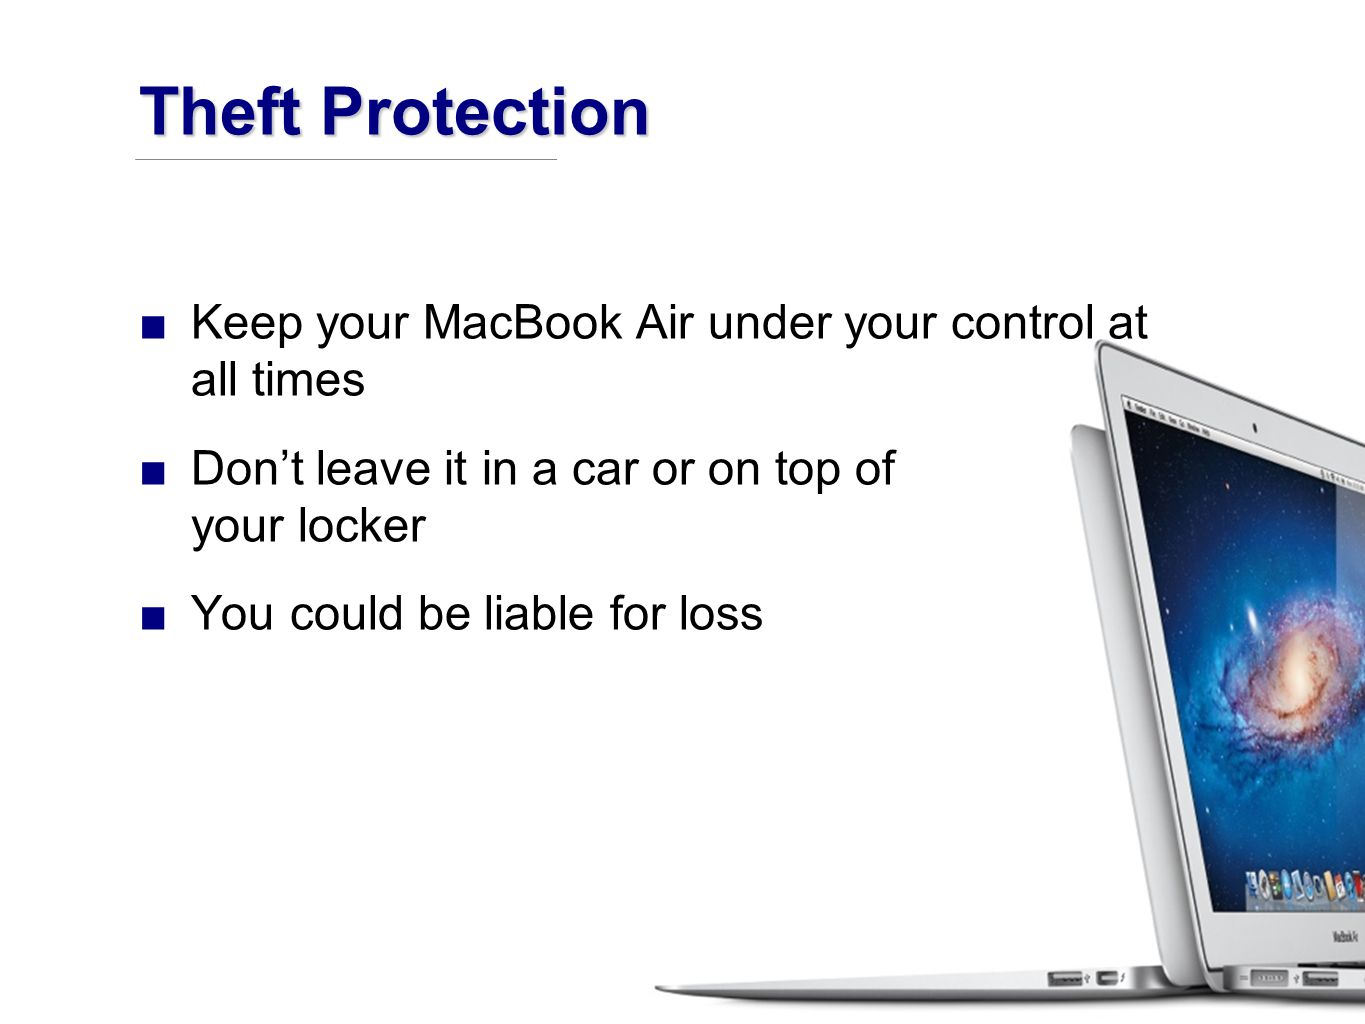 ■Keep your MacBook Air under your control at all times ■Don't leave it in a car or on top of your locker ■You could be liable for loss Theft Protection